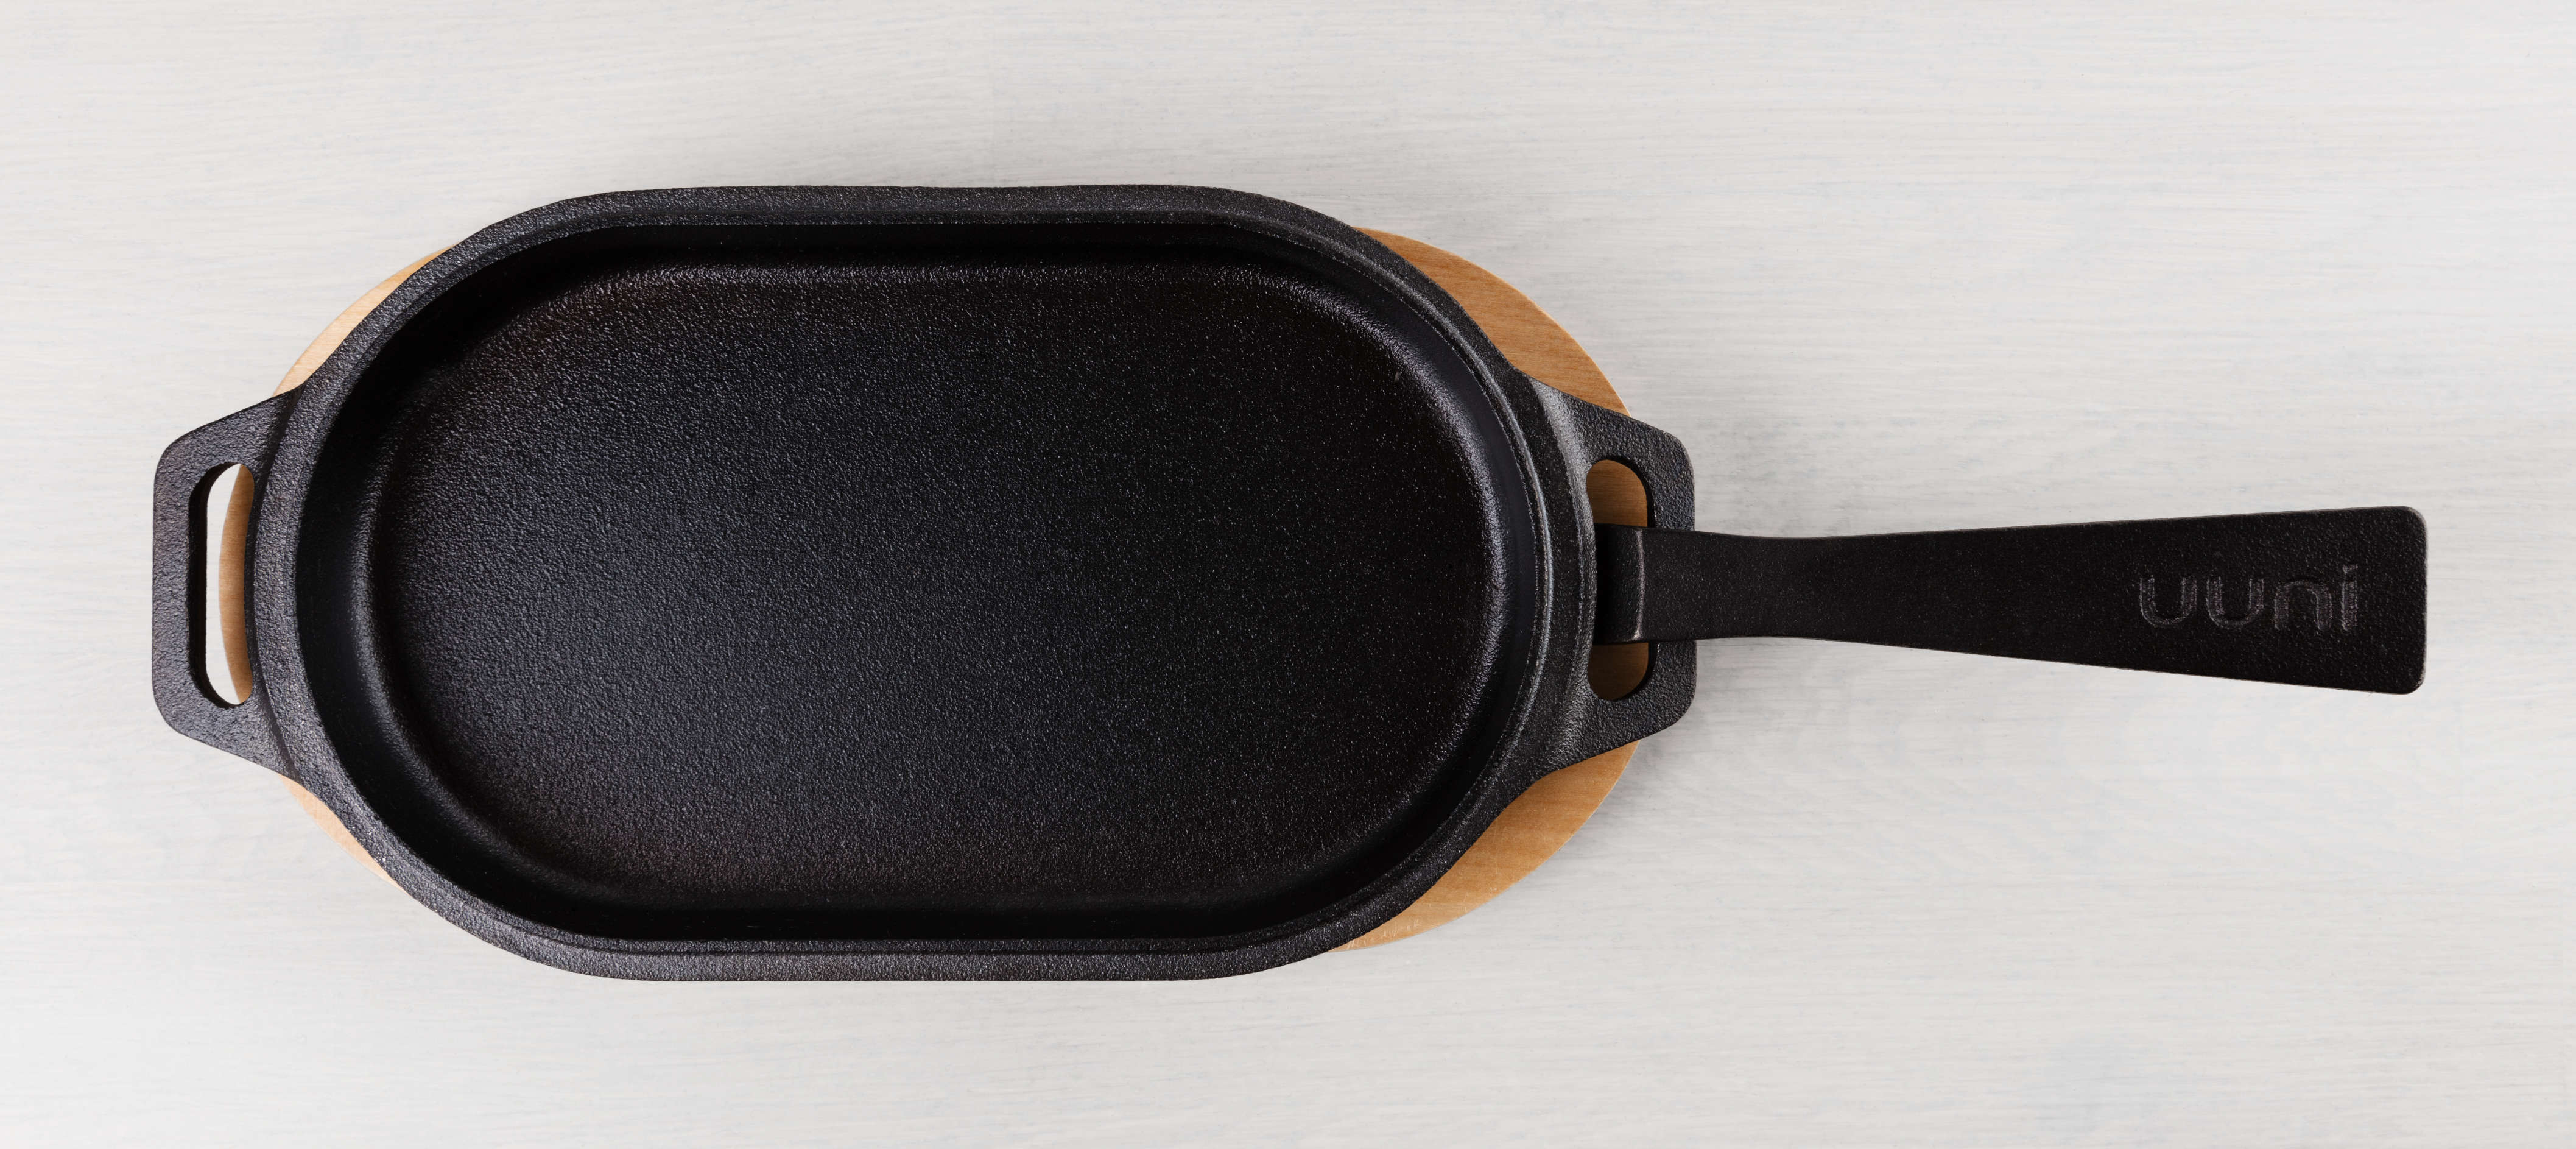 Image of the Uuni Cast Iron Series with the handle in place from the top